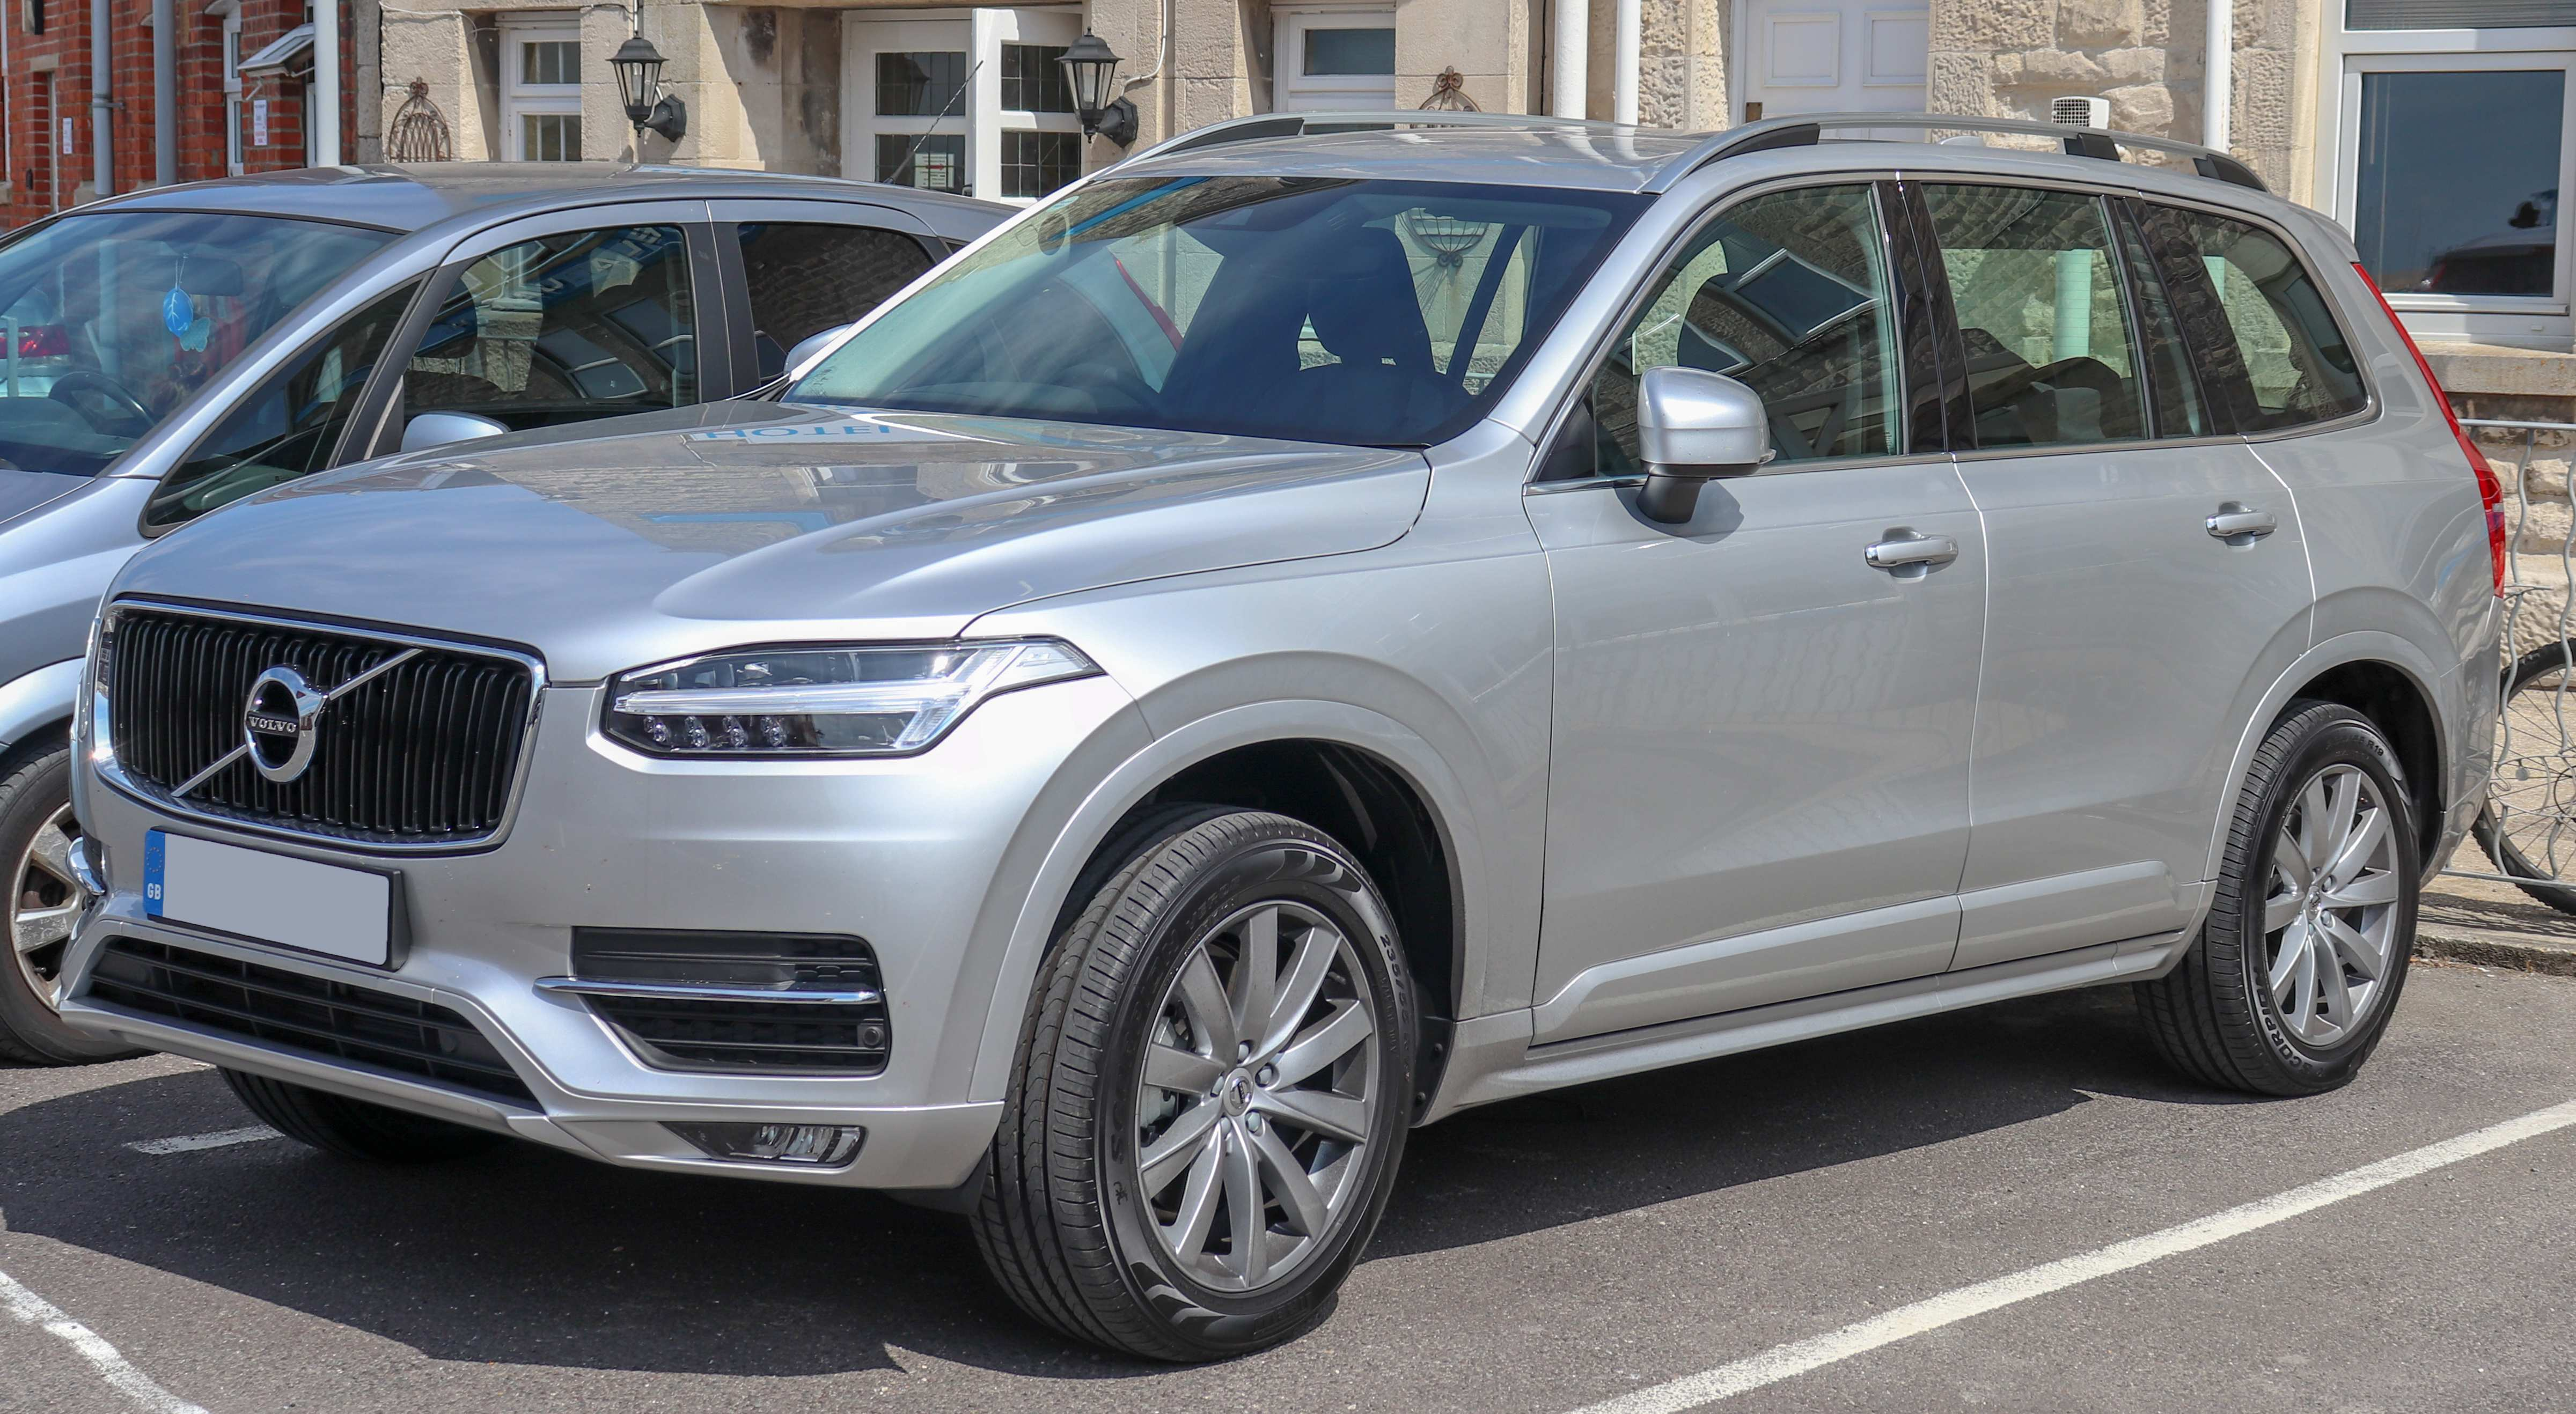 92 All New When Does The 2020 Volvo Come Out Spy Shoot for When Does The 2020 Volvo Come Out